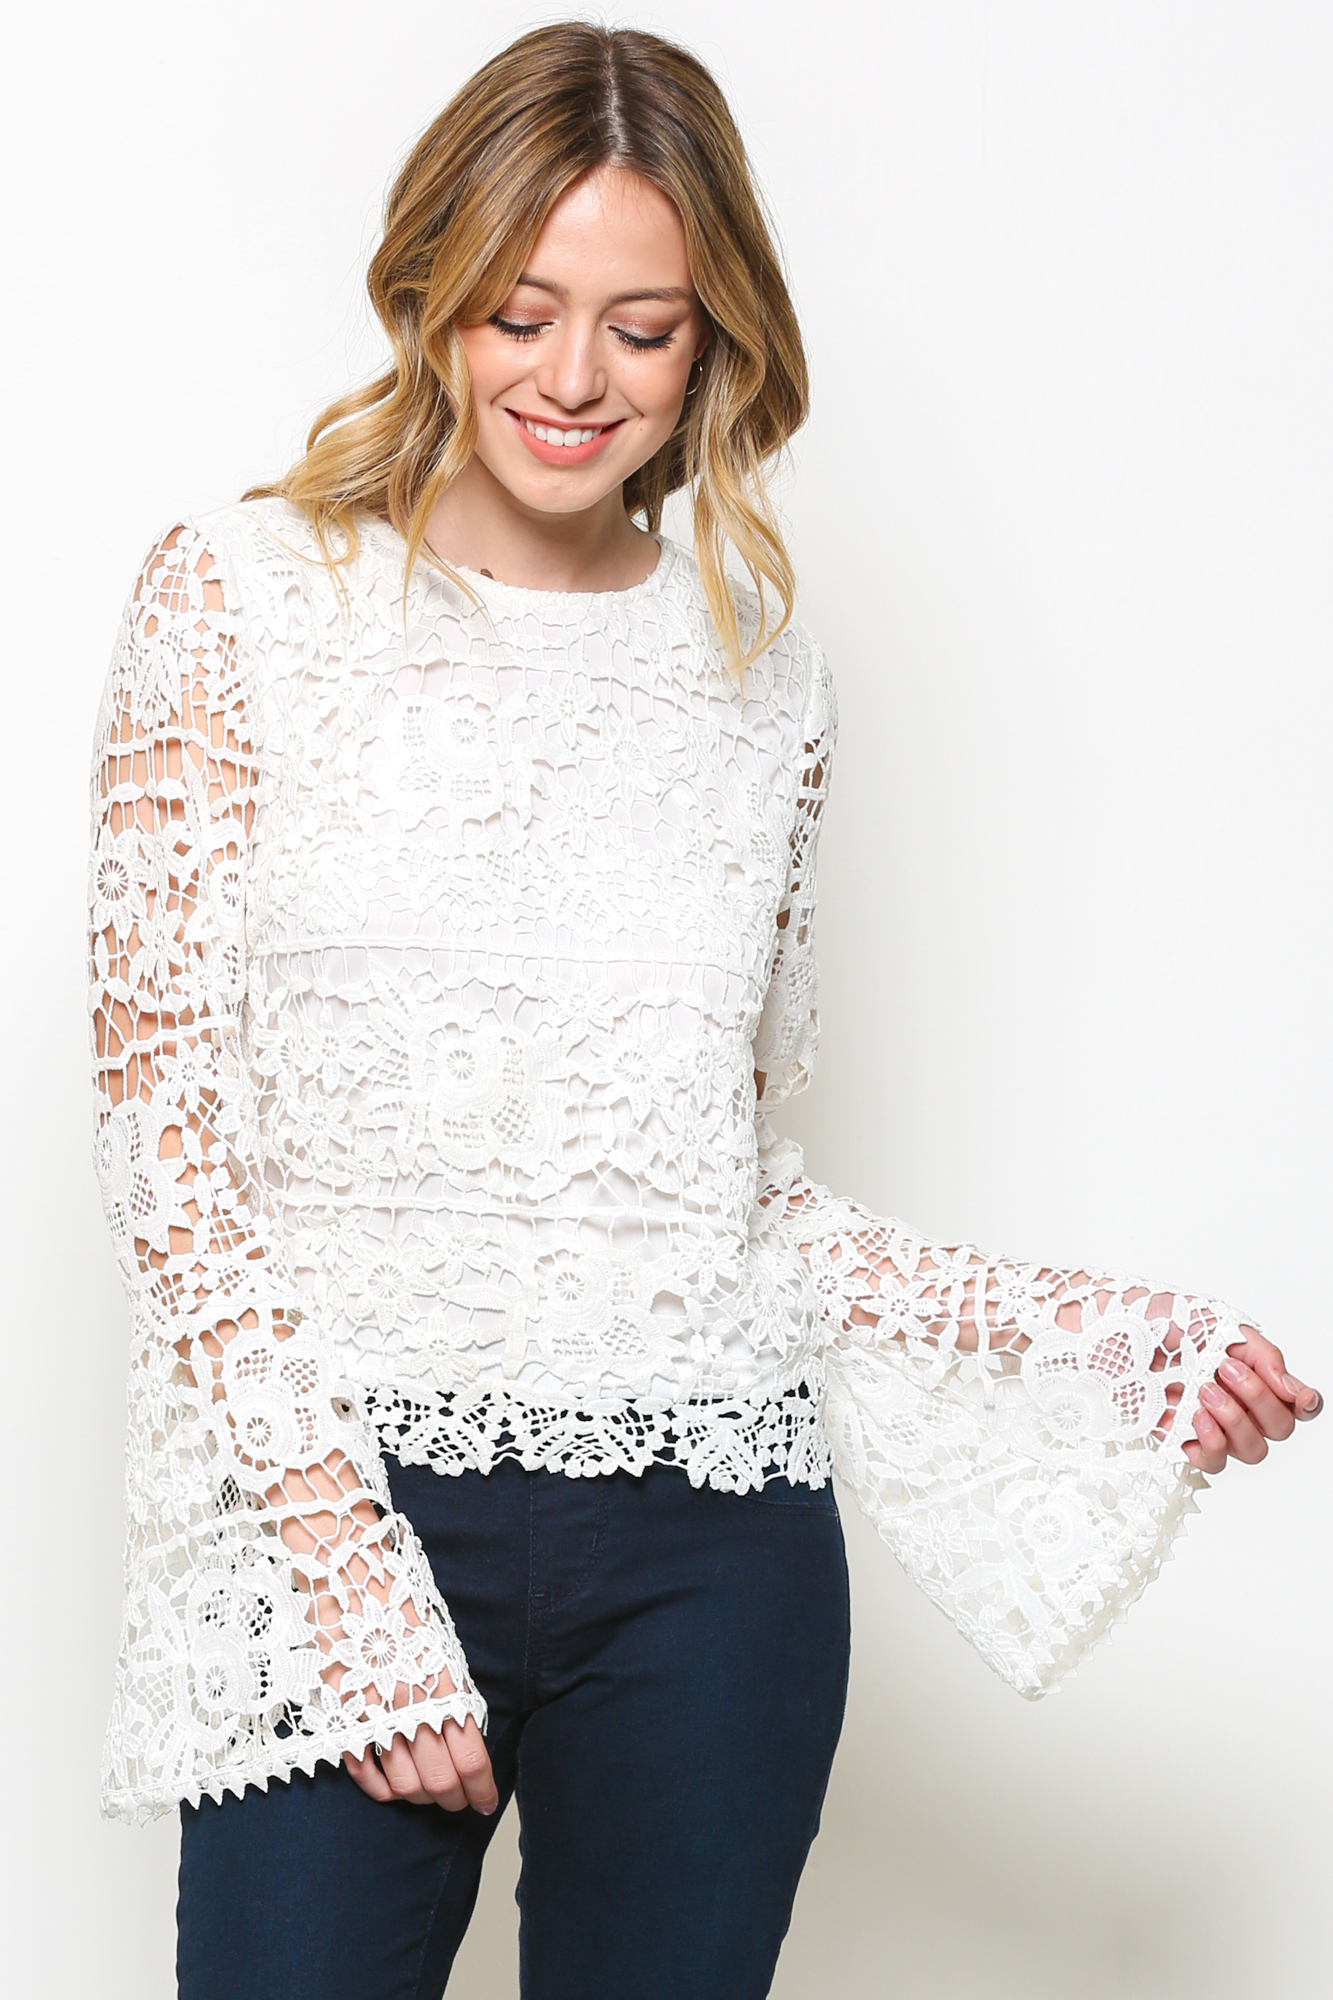 Lace fabric, flared sleeve,back button closure with keyhole